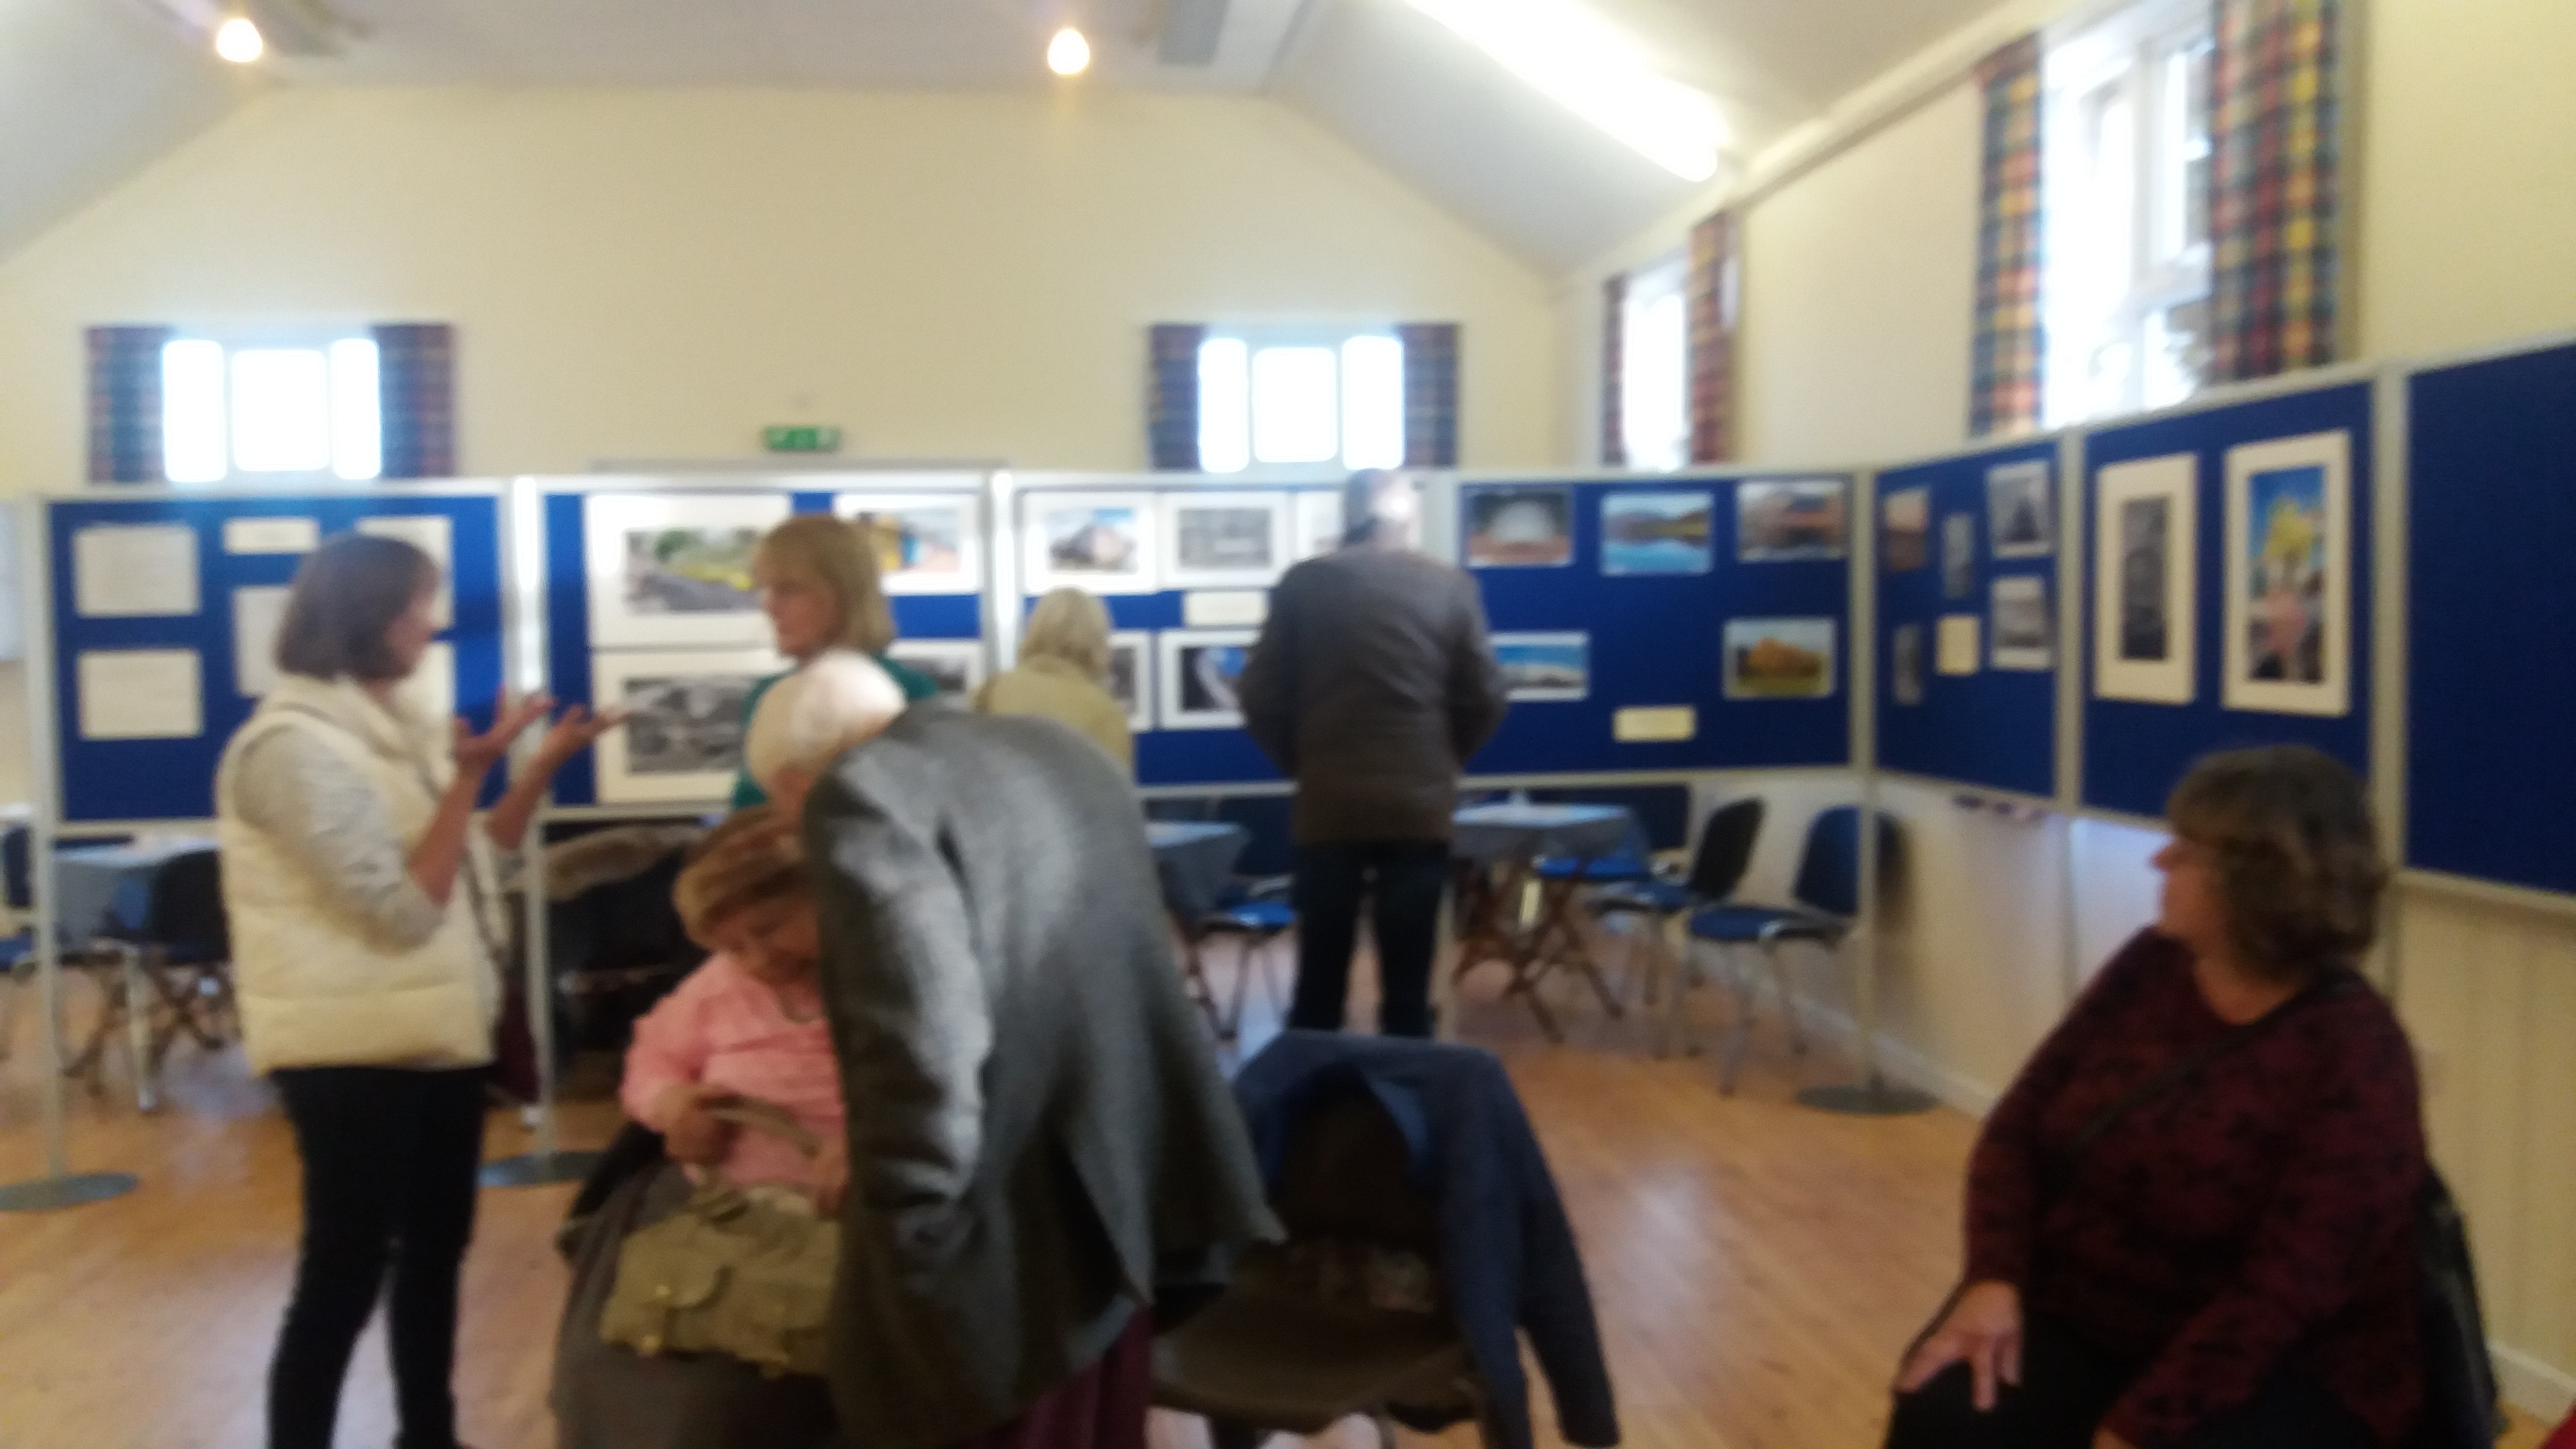 Wetherden Arts & Crafts Exhibition